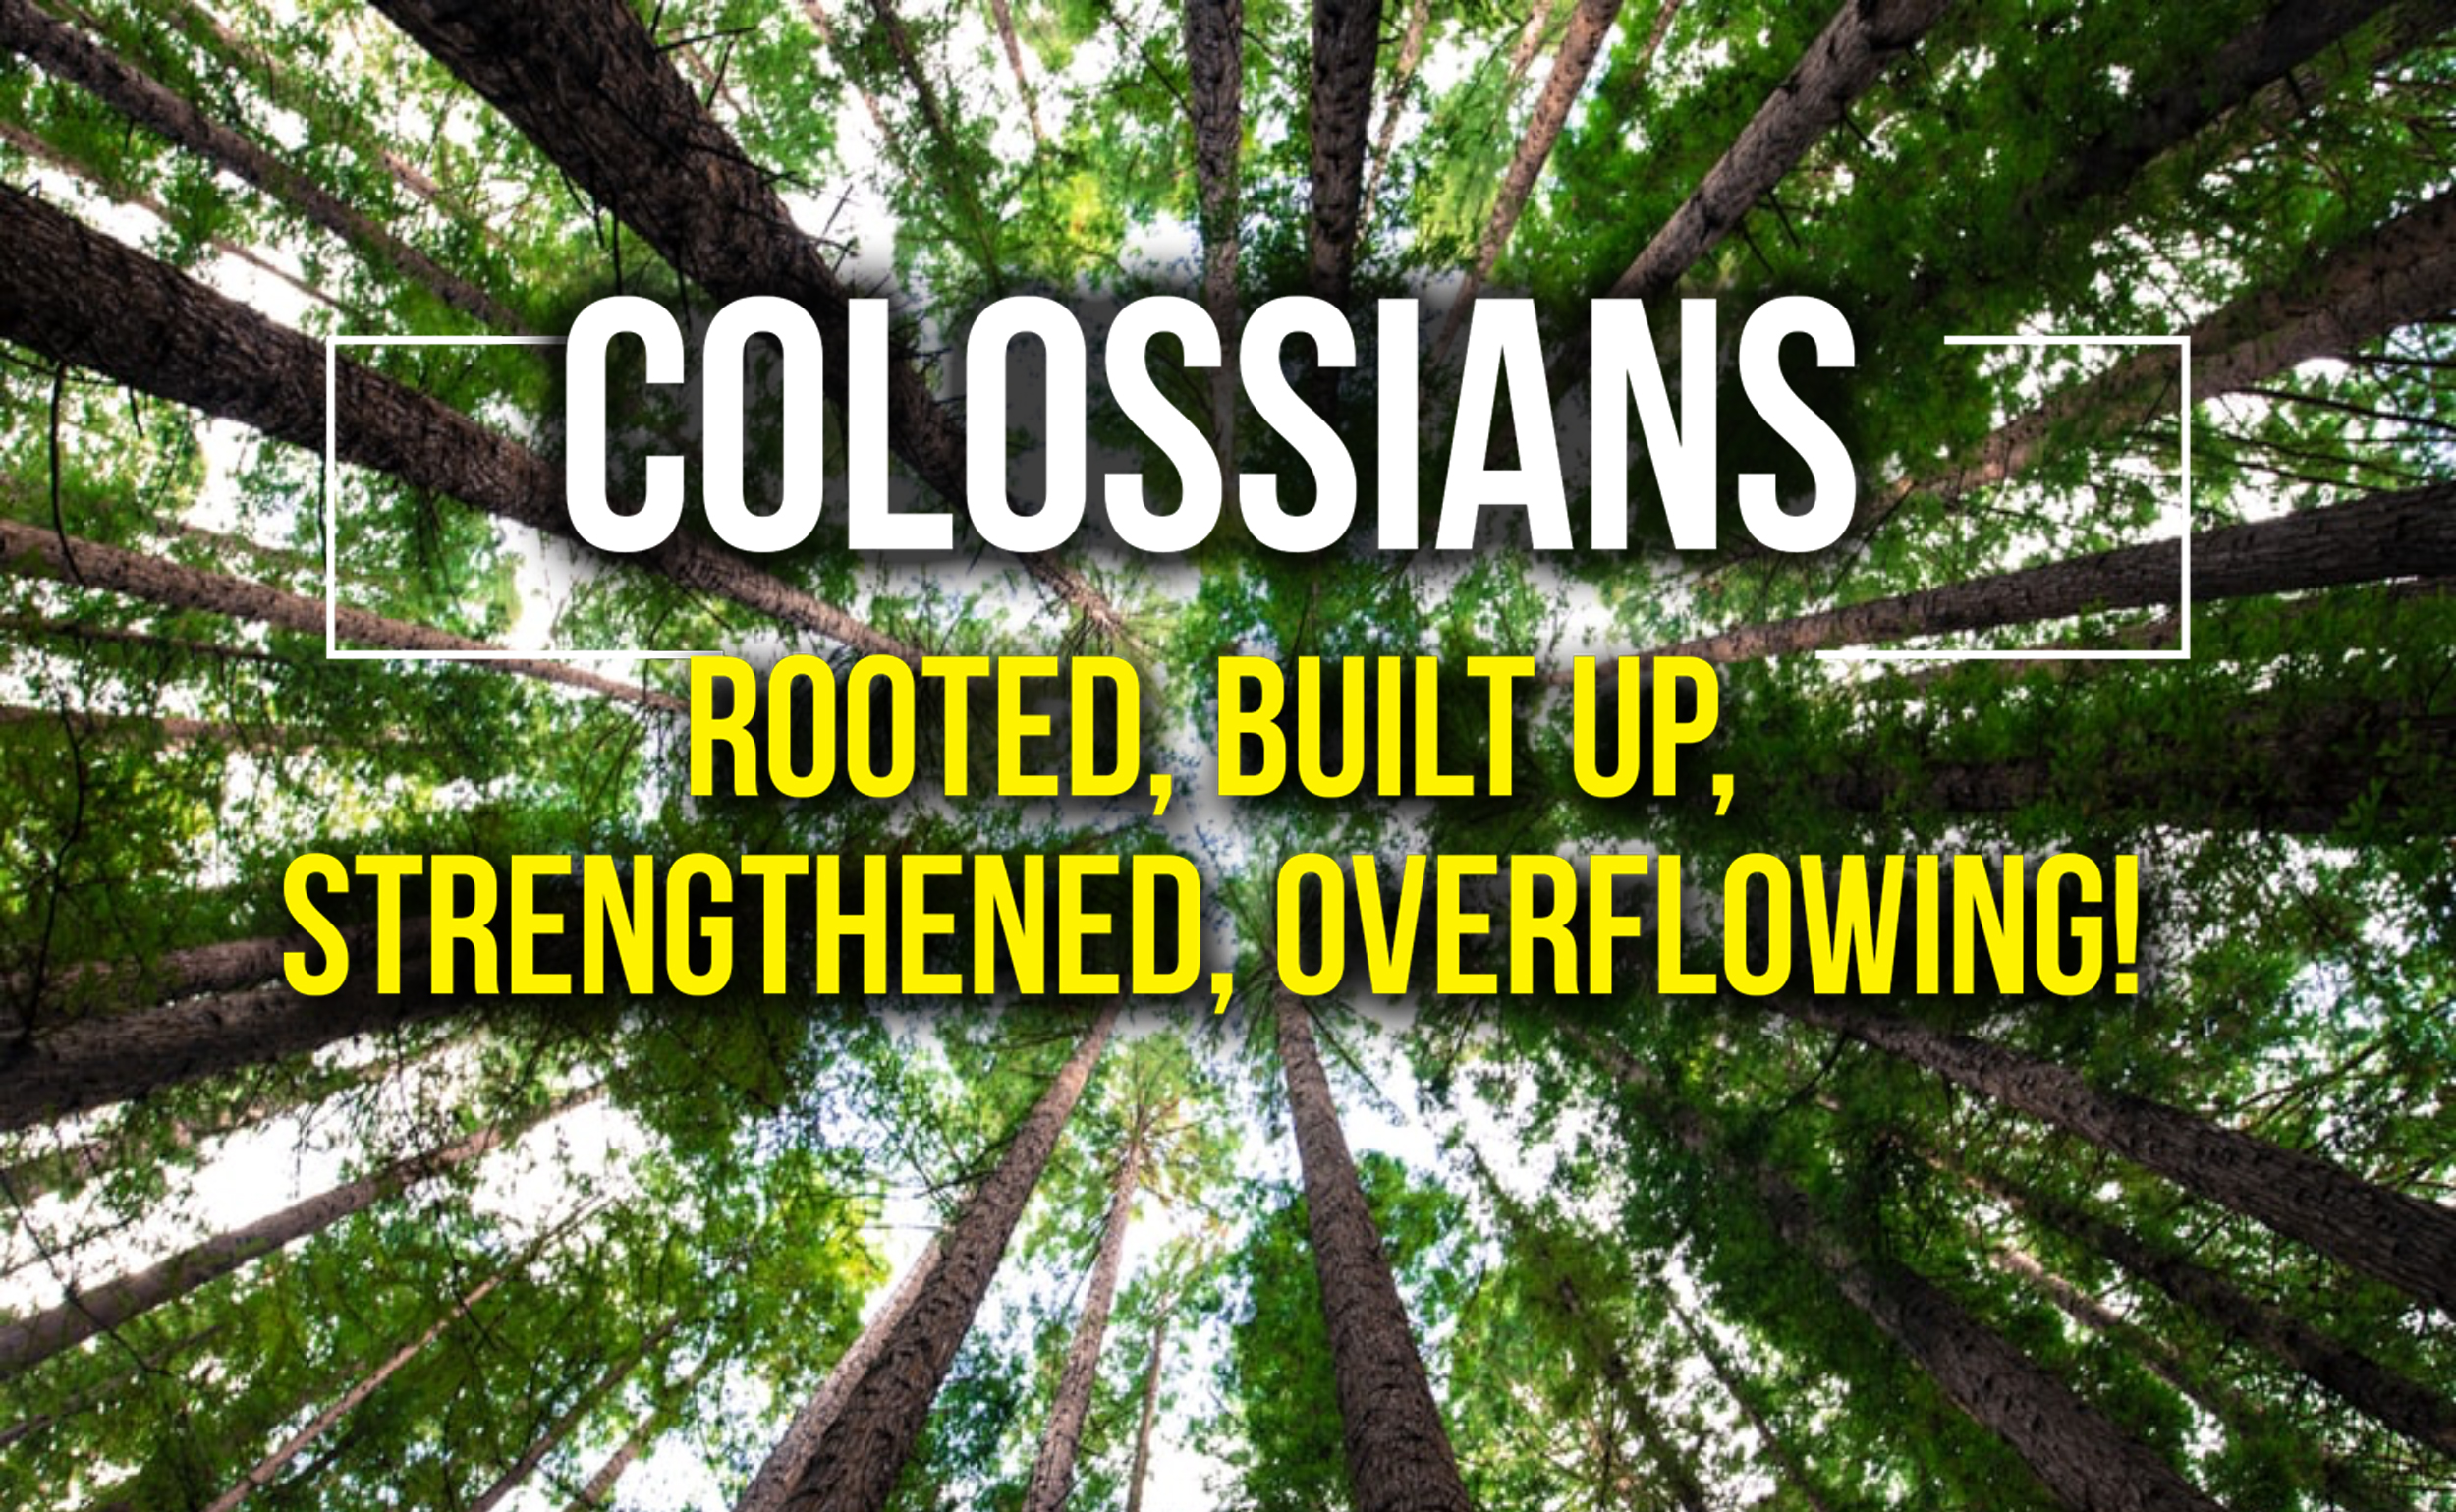 Colossians 2:16-23 Let no-one disqualify you